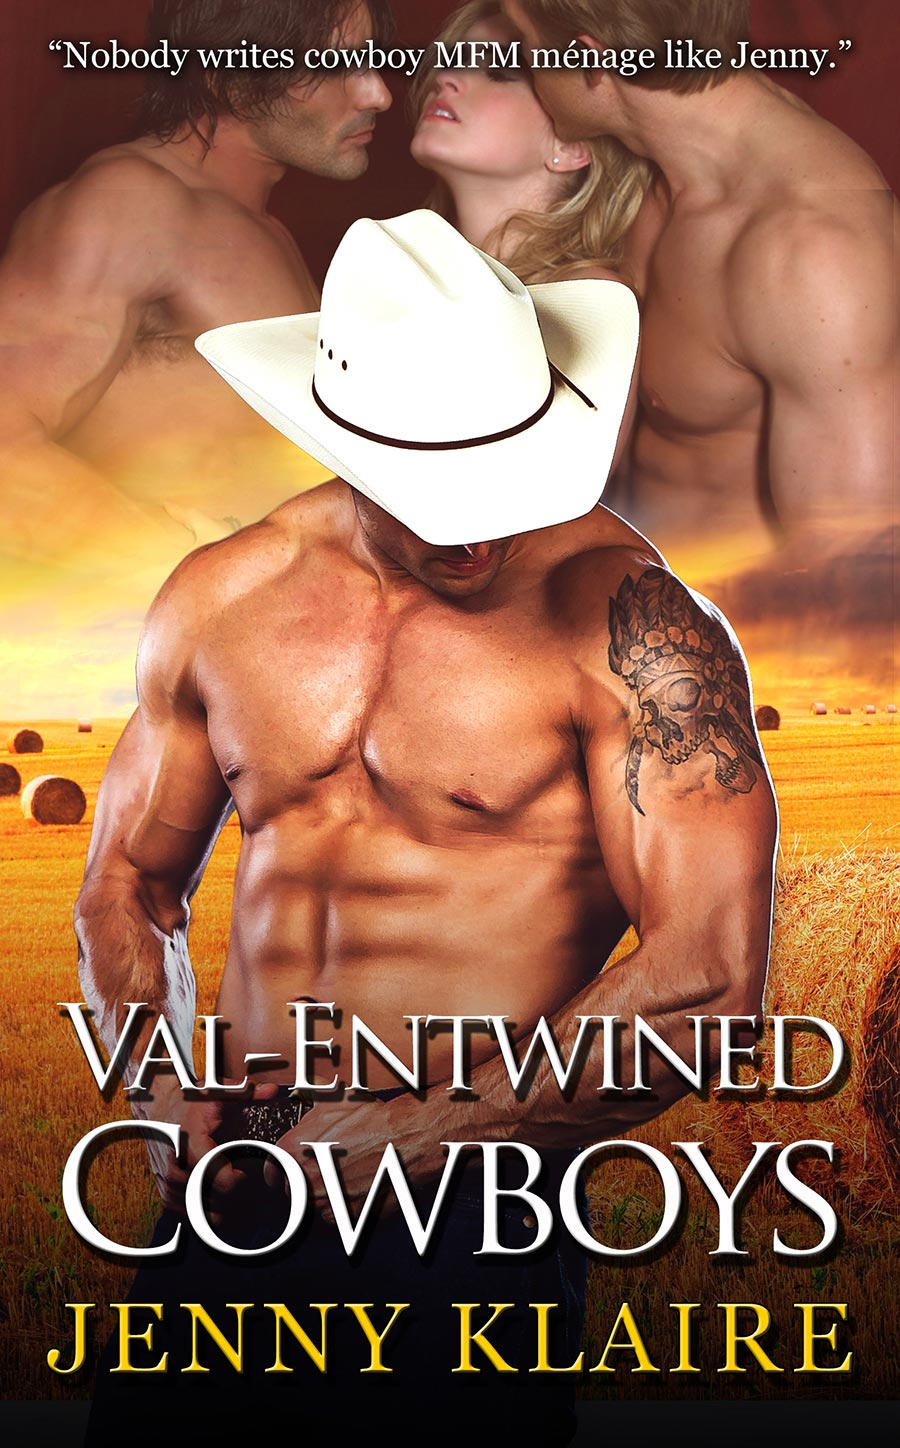 Val-Entwined-Cownoys---Jenny-Klaire---resized.jpg